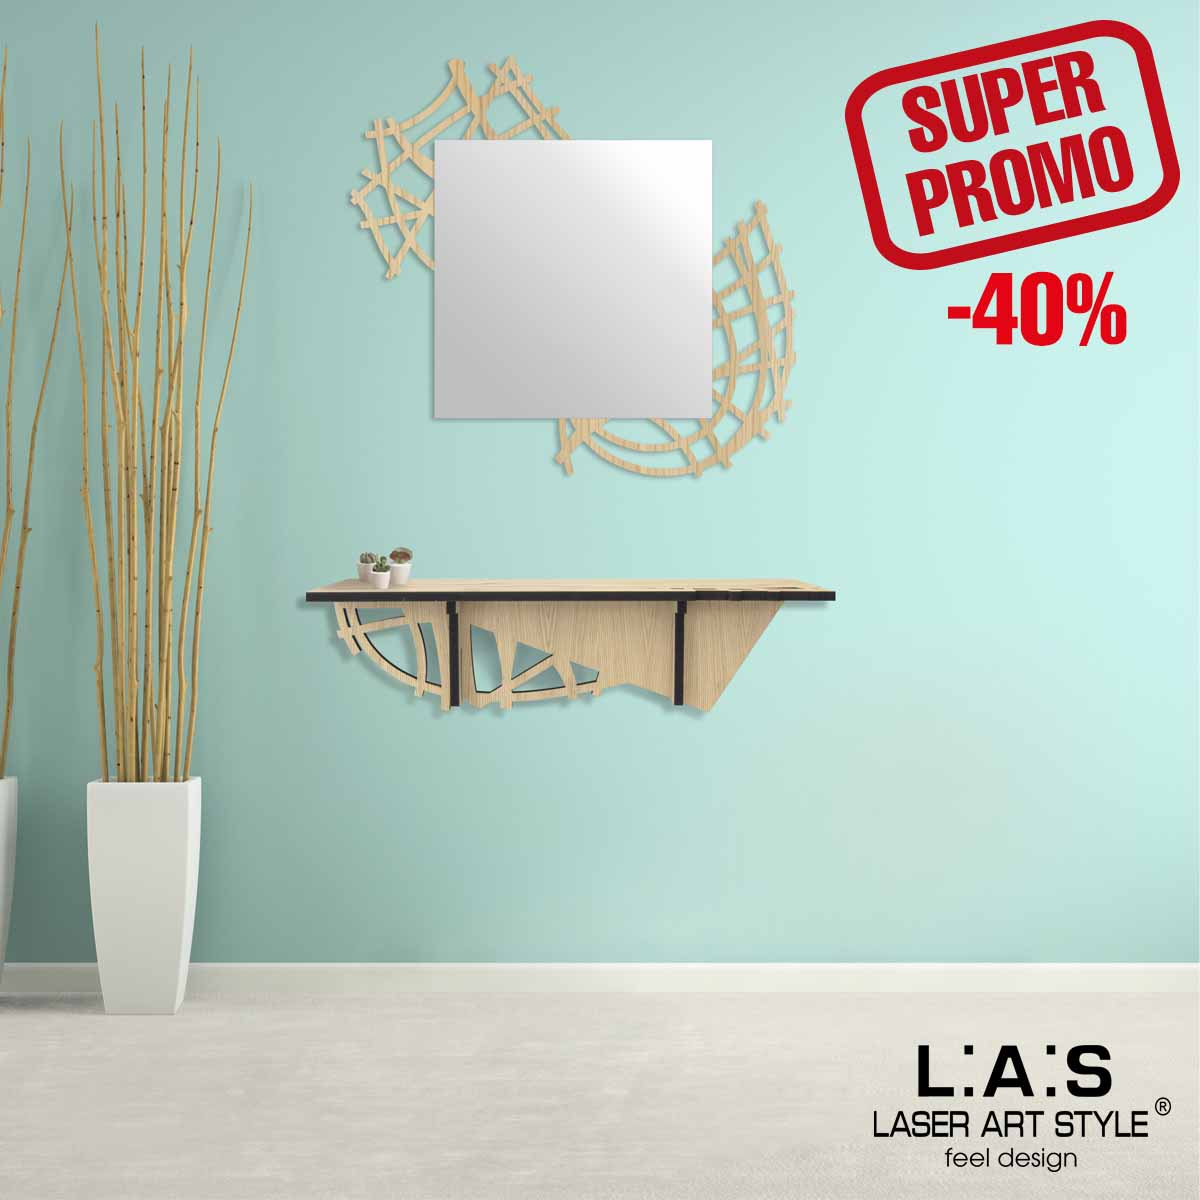 L:A:S - Laser Art Style - CONSOLLE INGRESSO MODERNO – W-395 NATURAL WOOD